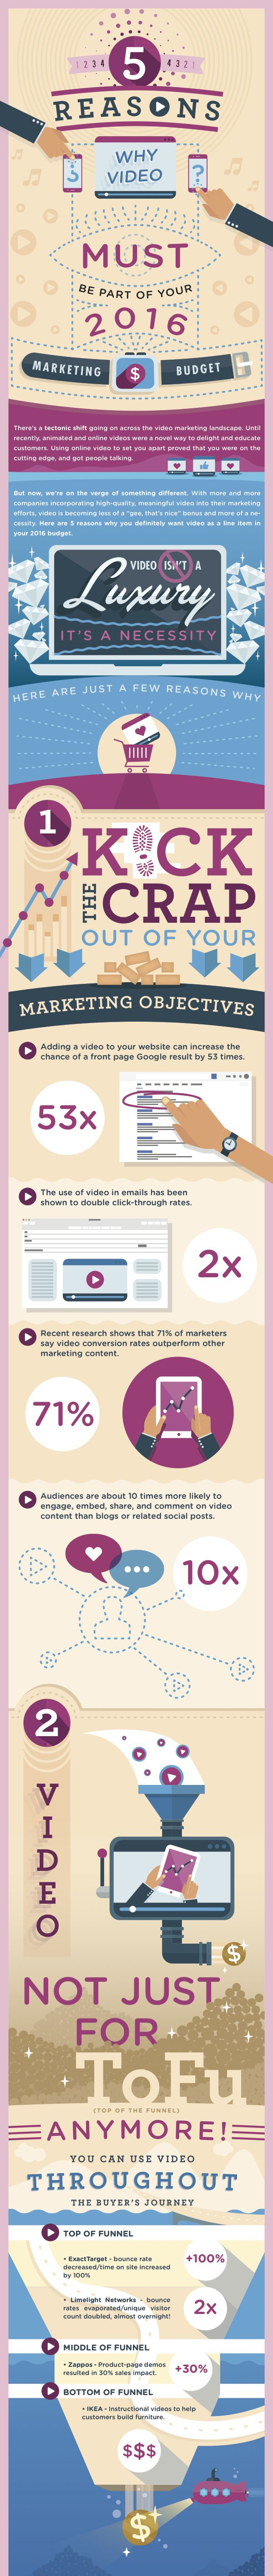 5 Reasons Video MUST Be Part of Your 2016 Marketing Budget [Infographic] - http://360phot0.com/5-reasons-video-must-be-part-of-your-2016-marketing-budget-infographic/